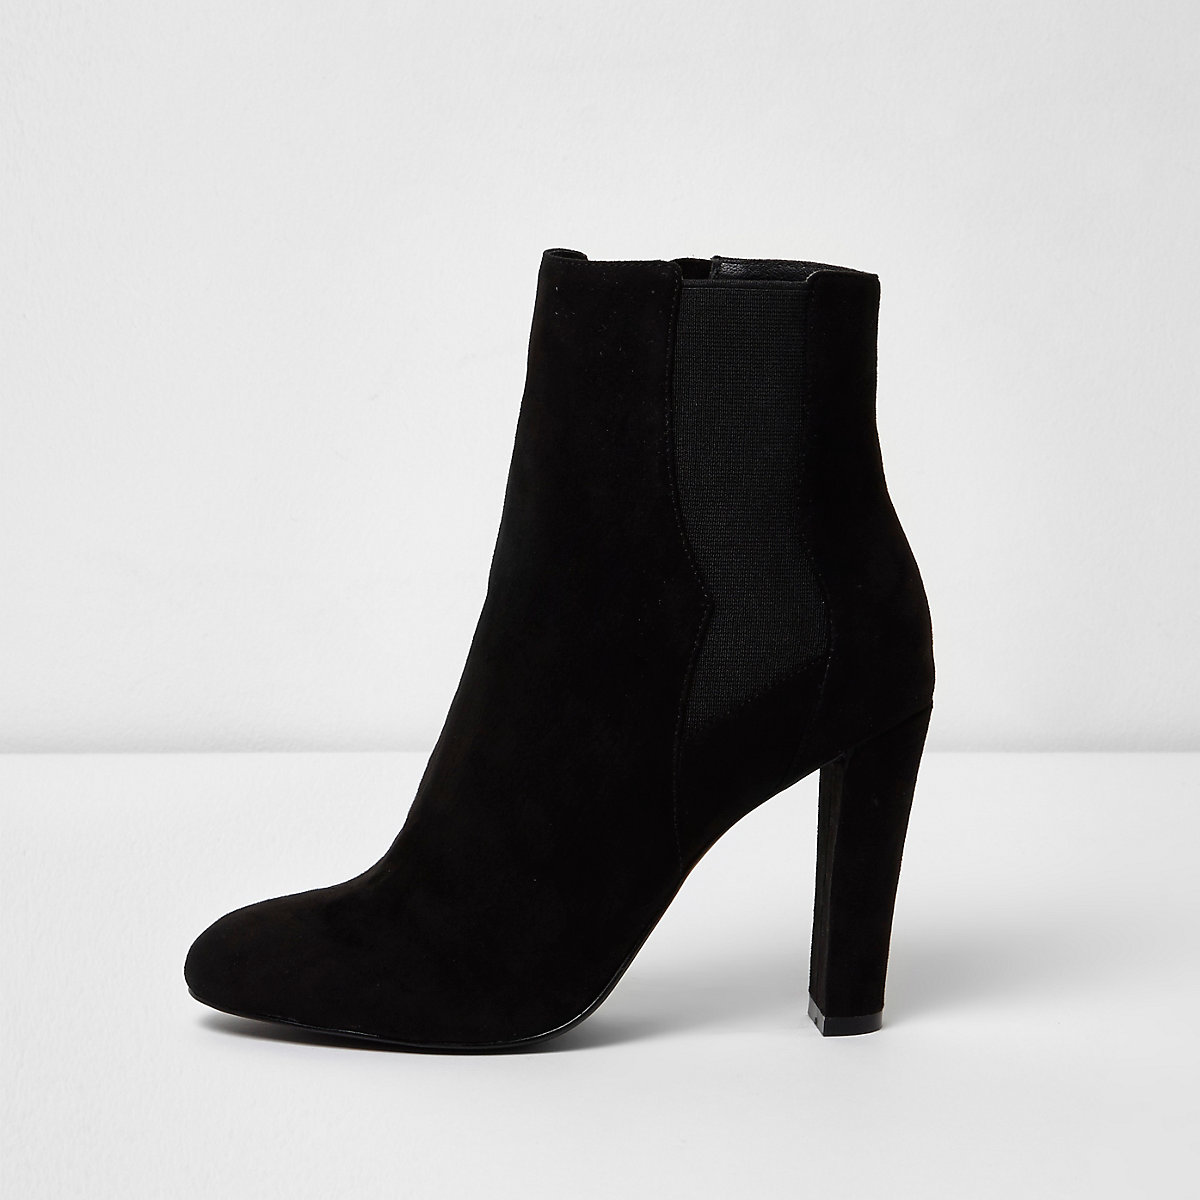 Black heeled chelsea boots - Boots - Shoes   Boots - women 09651dac5